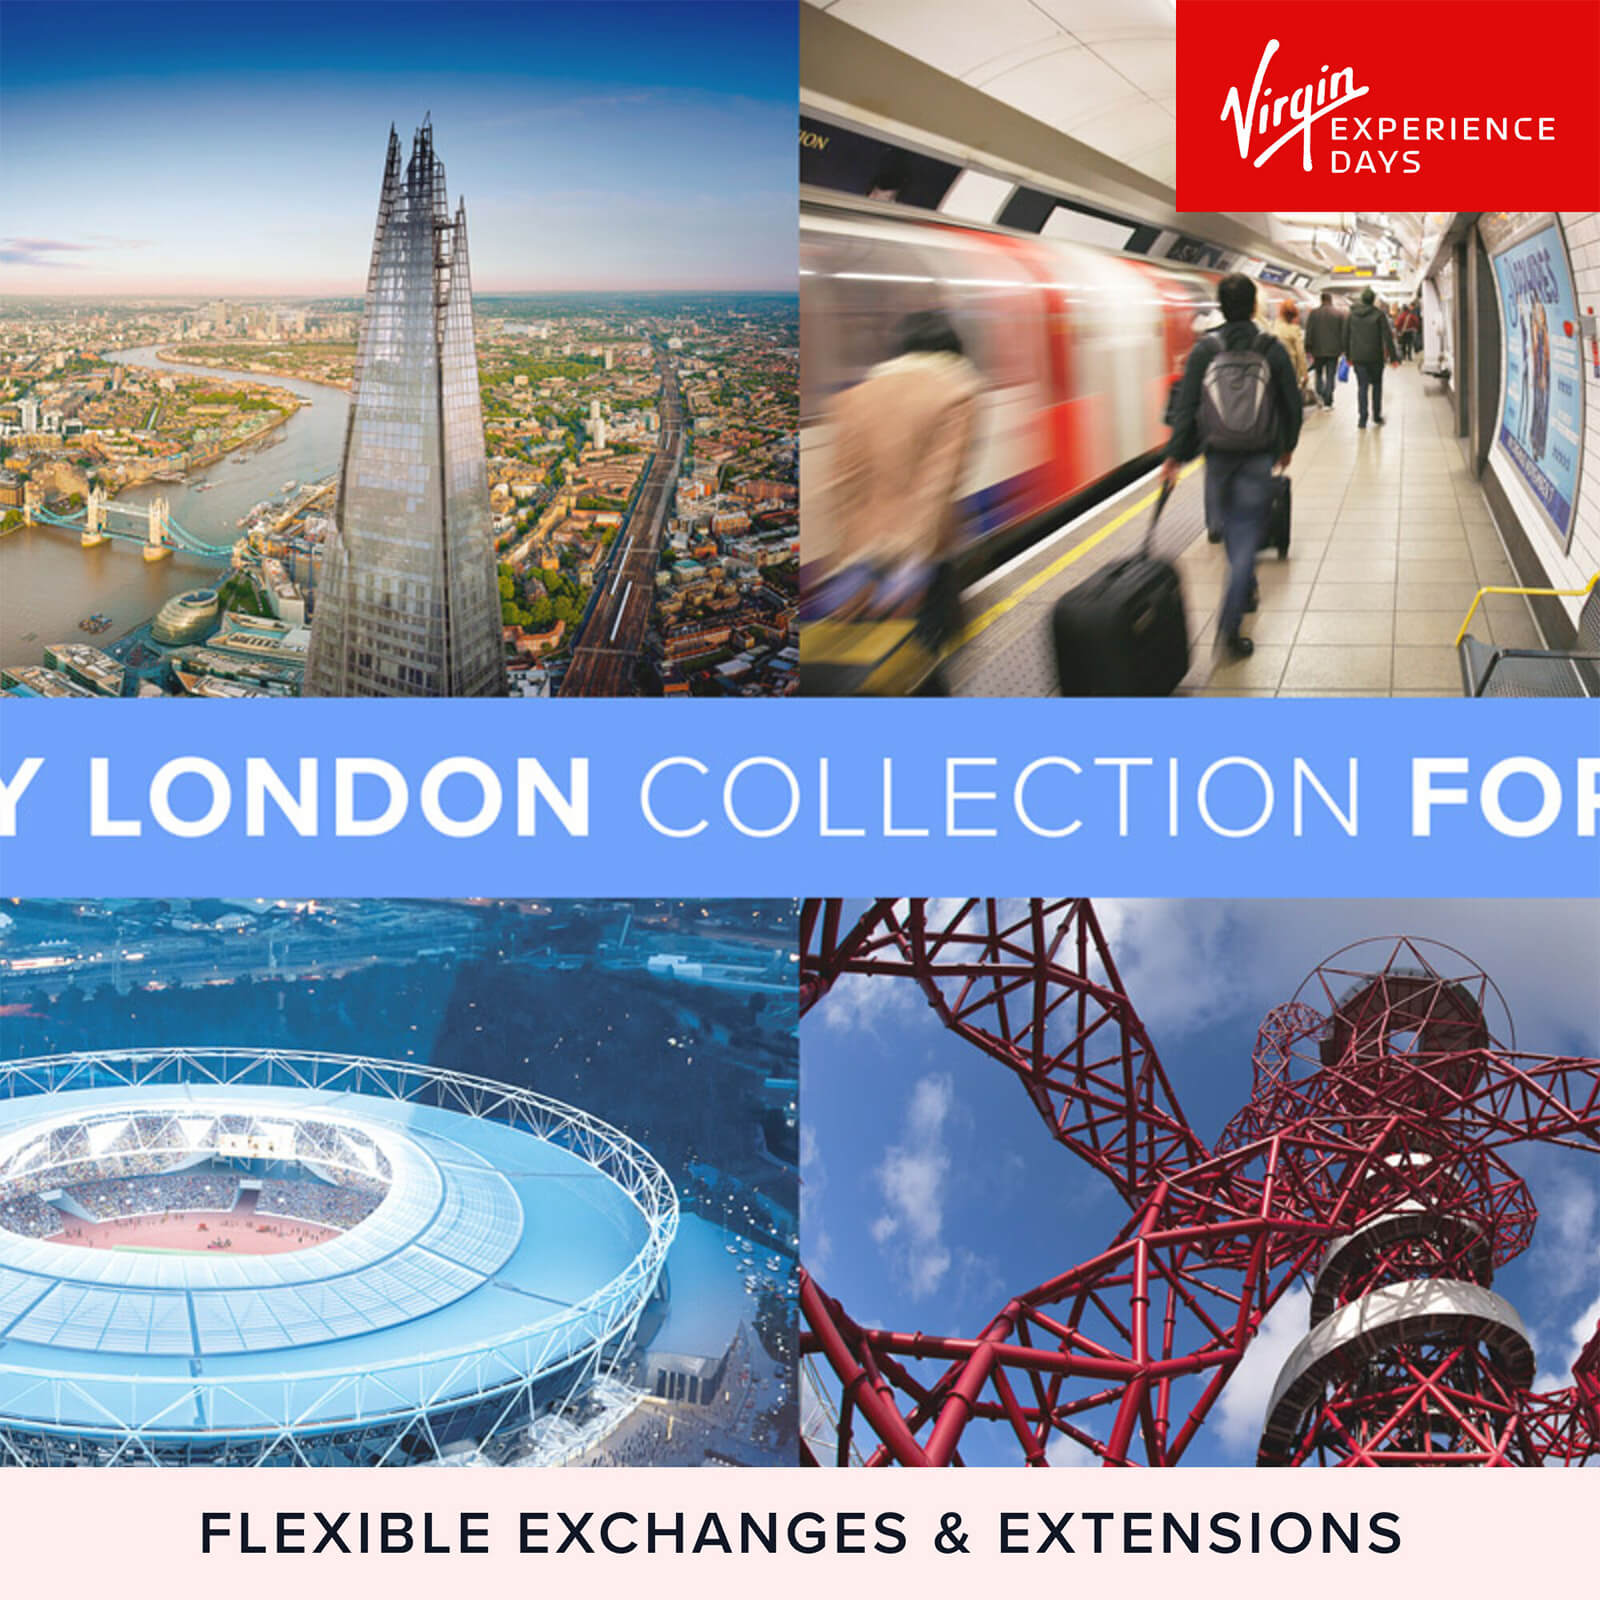 Image of Enjoy London Collection for Two